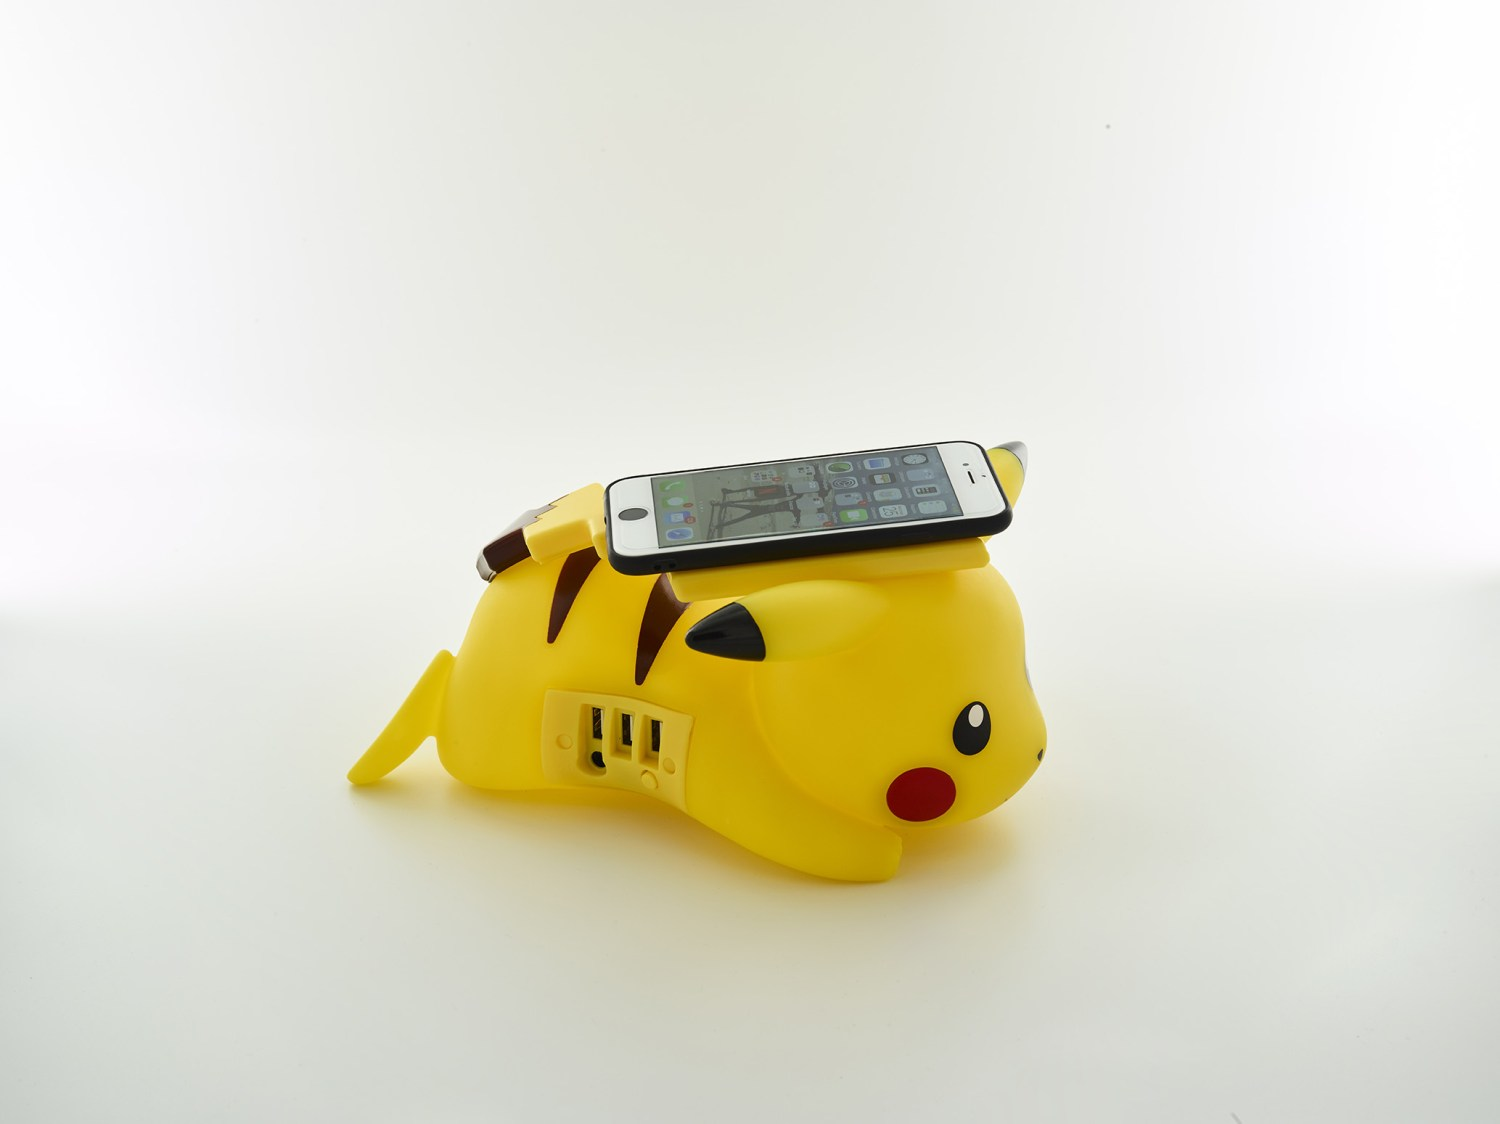 Pikachu wireless charger side view